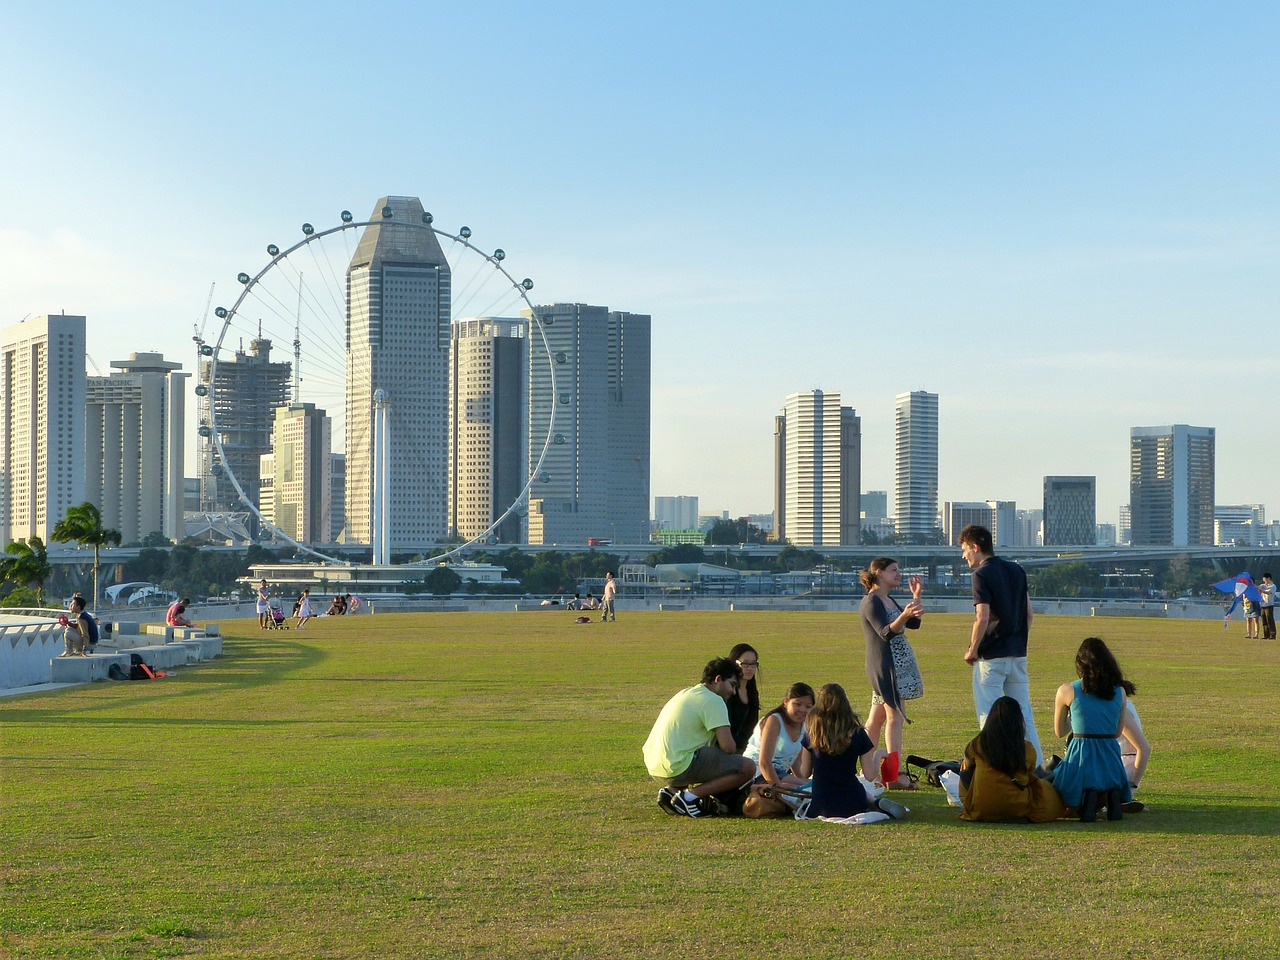 Marina Barrage - travel treasures